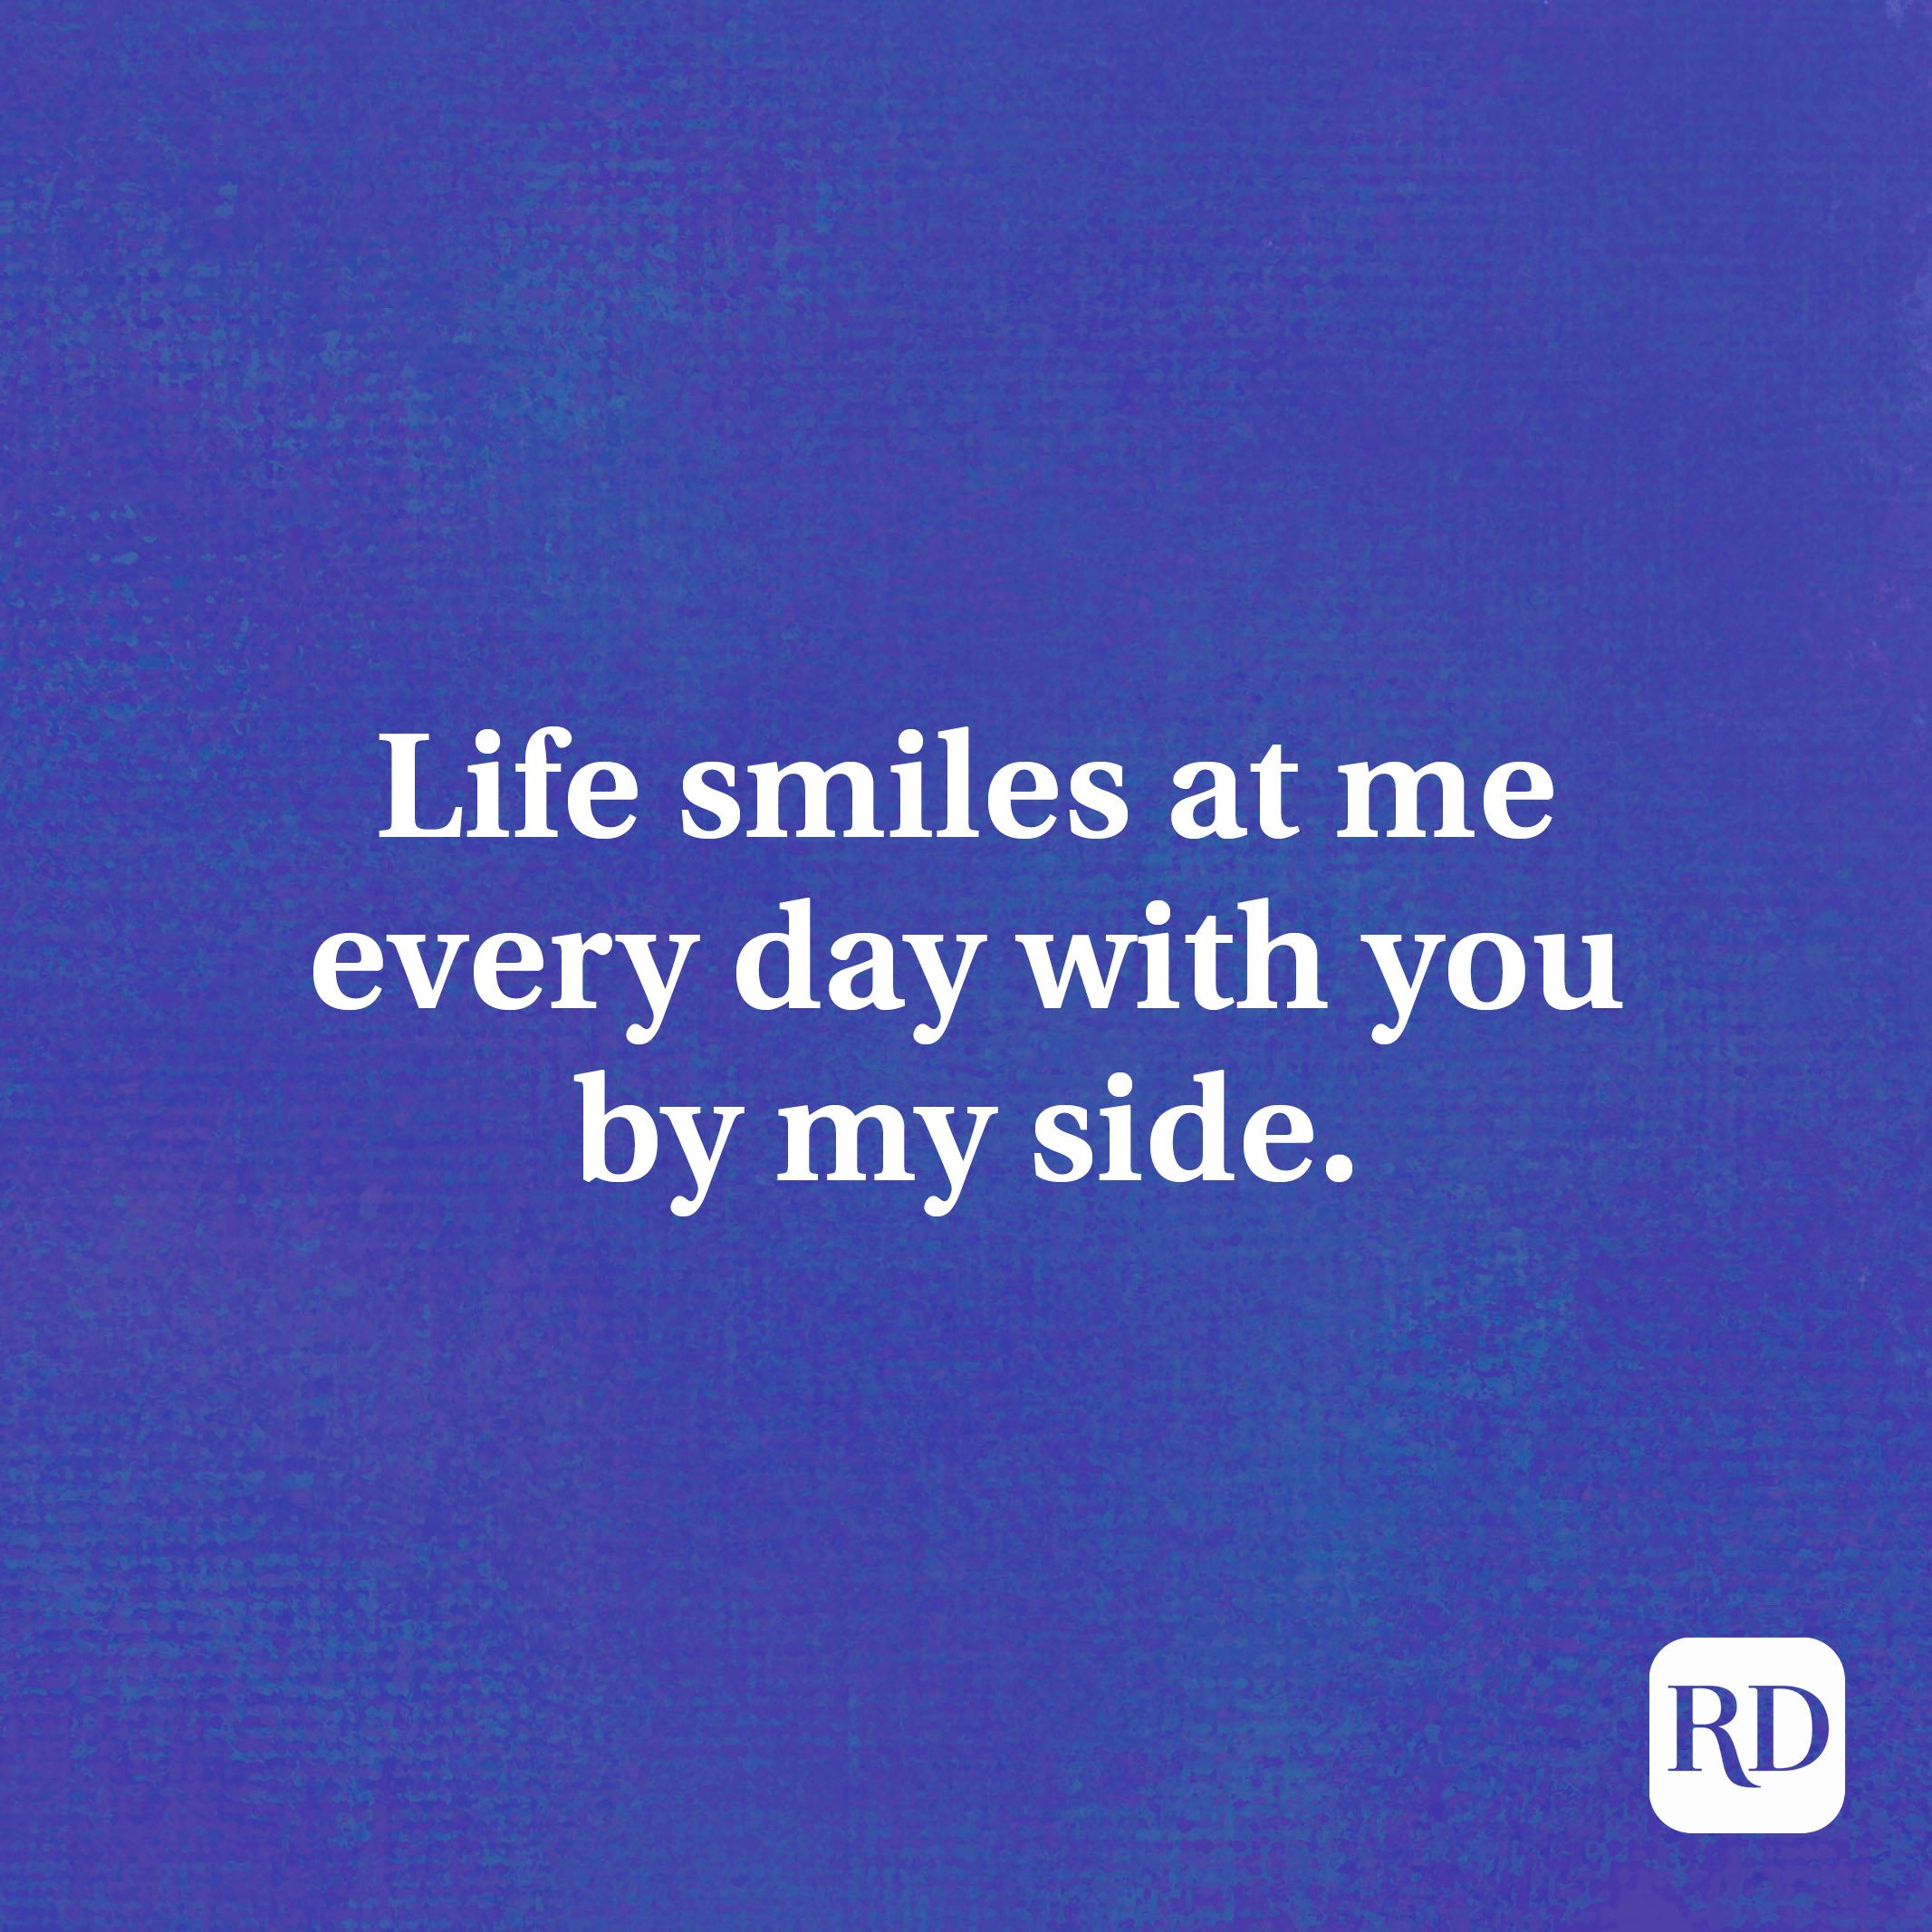 Life smiles at me every day with you by my side.